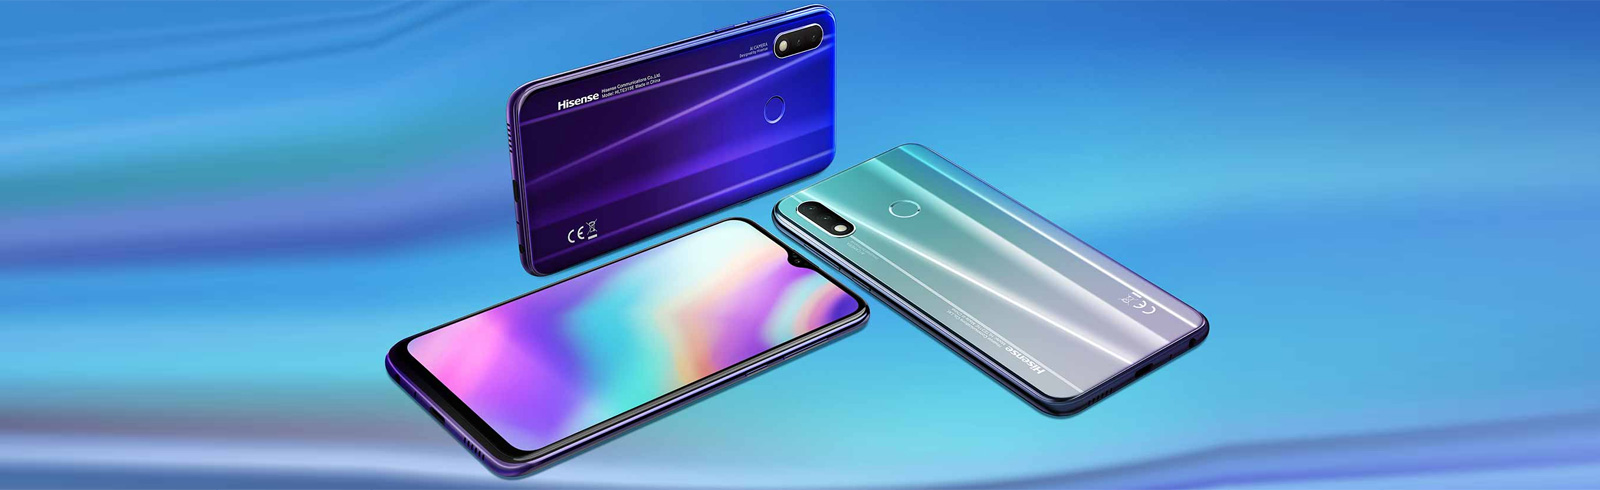 Hisense announces the Infinity H30 in South Africa